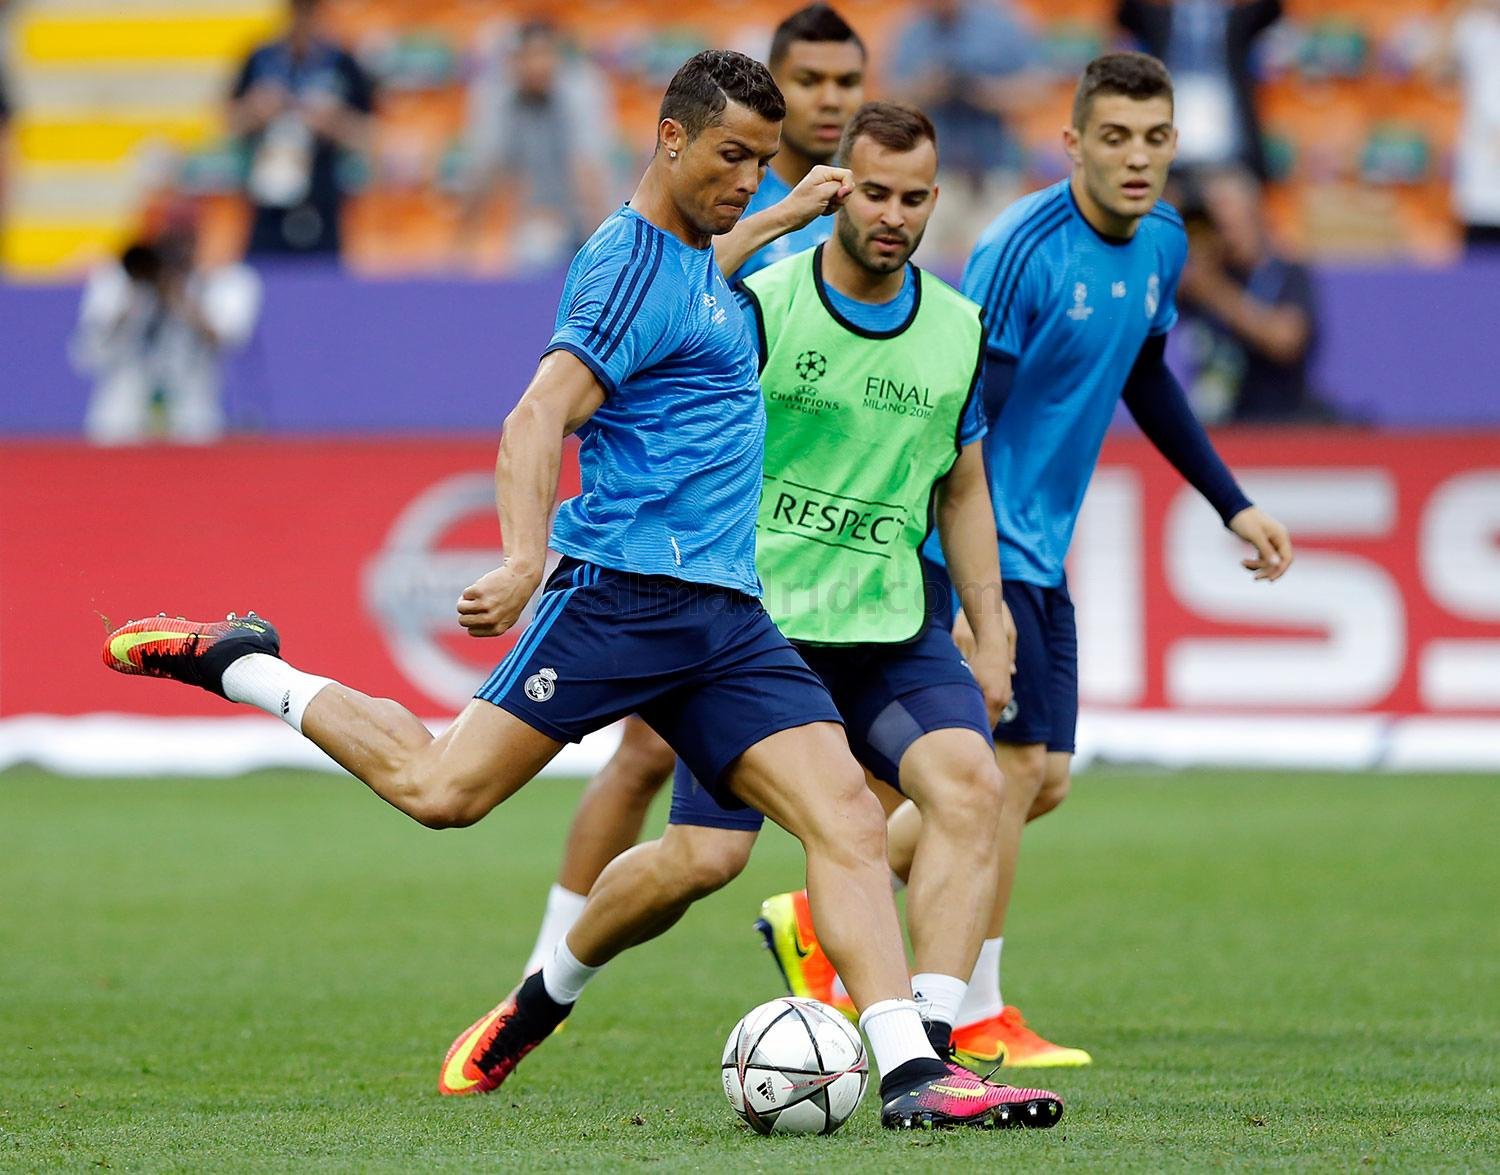 Real Madrid - Entrenamiento del Real Madrid - 27-05-2016